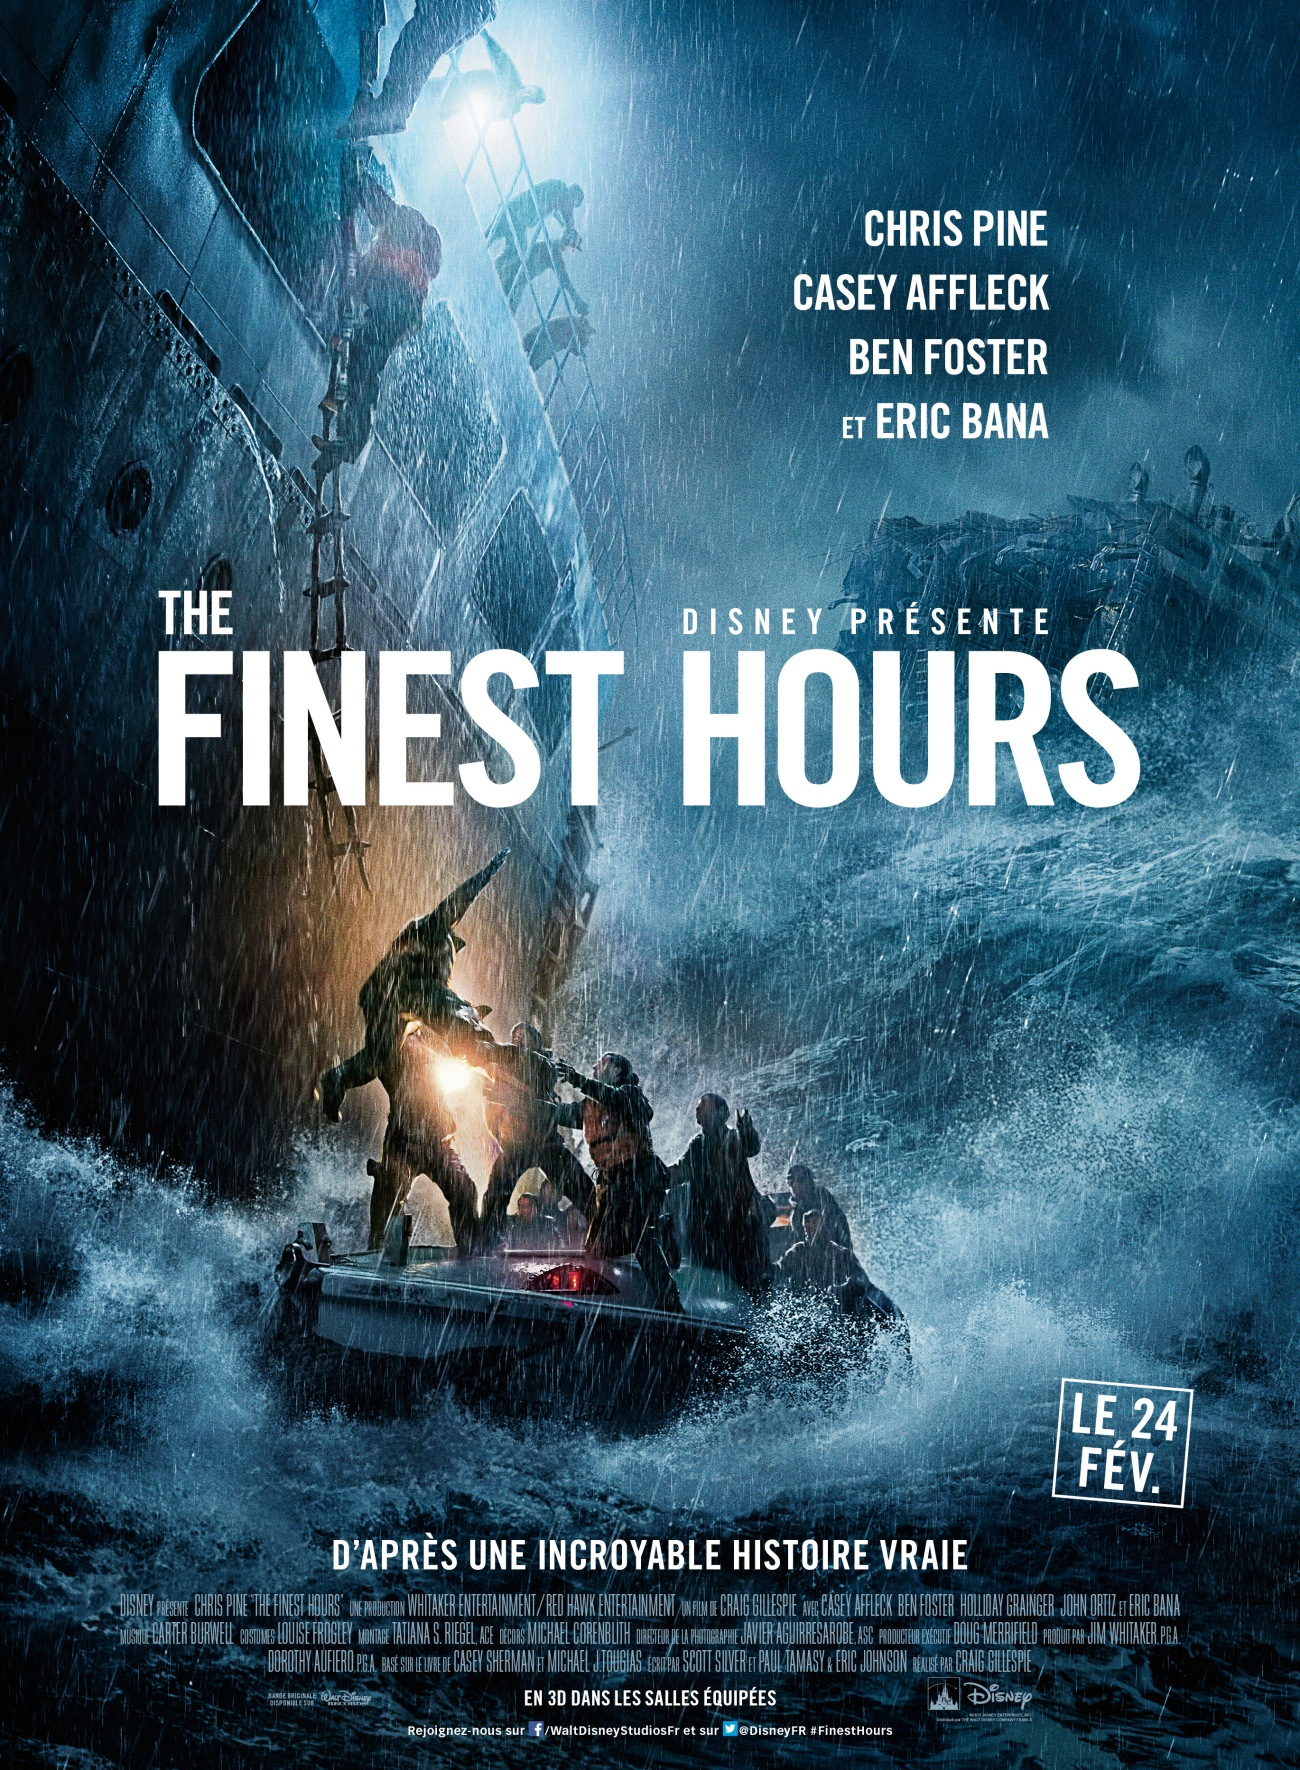 THE_FINEST_HOURS_120_RVB